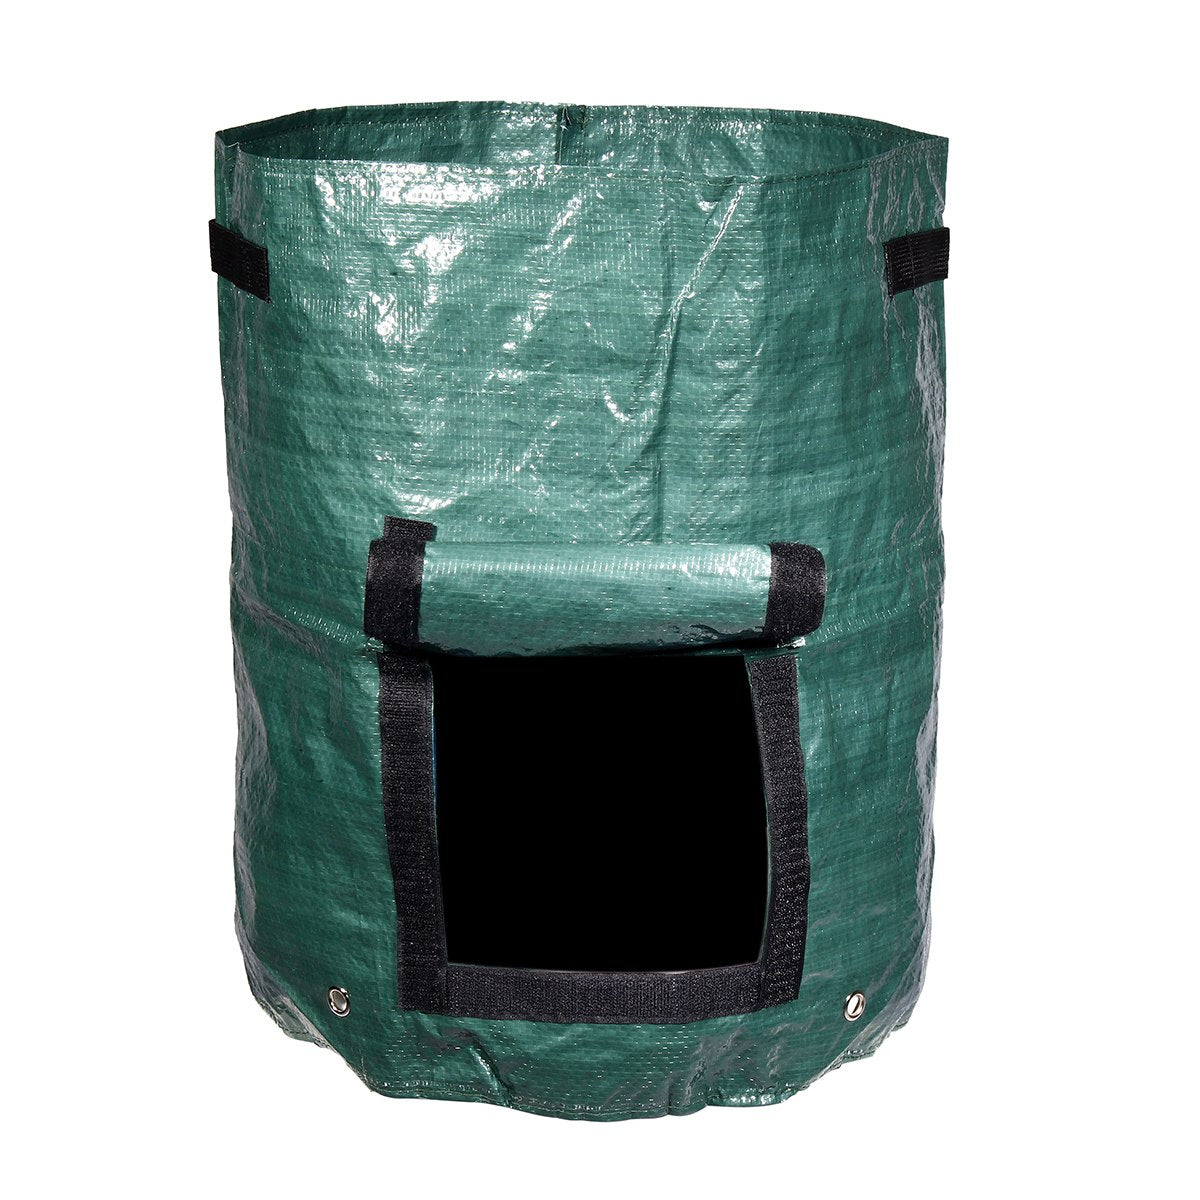 Costbuys  Green 60L Garden Composter Bin Grow Bag Eco Friendly Organic Compost Storage Bag Waste Converter Yard Garden Supplies